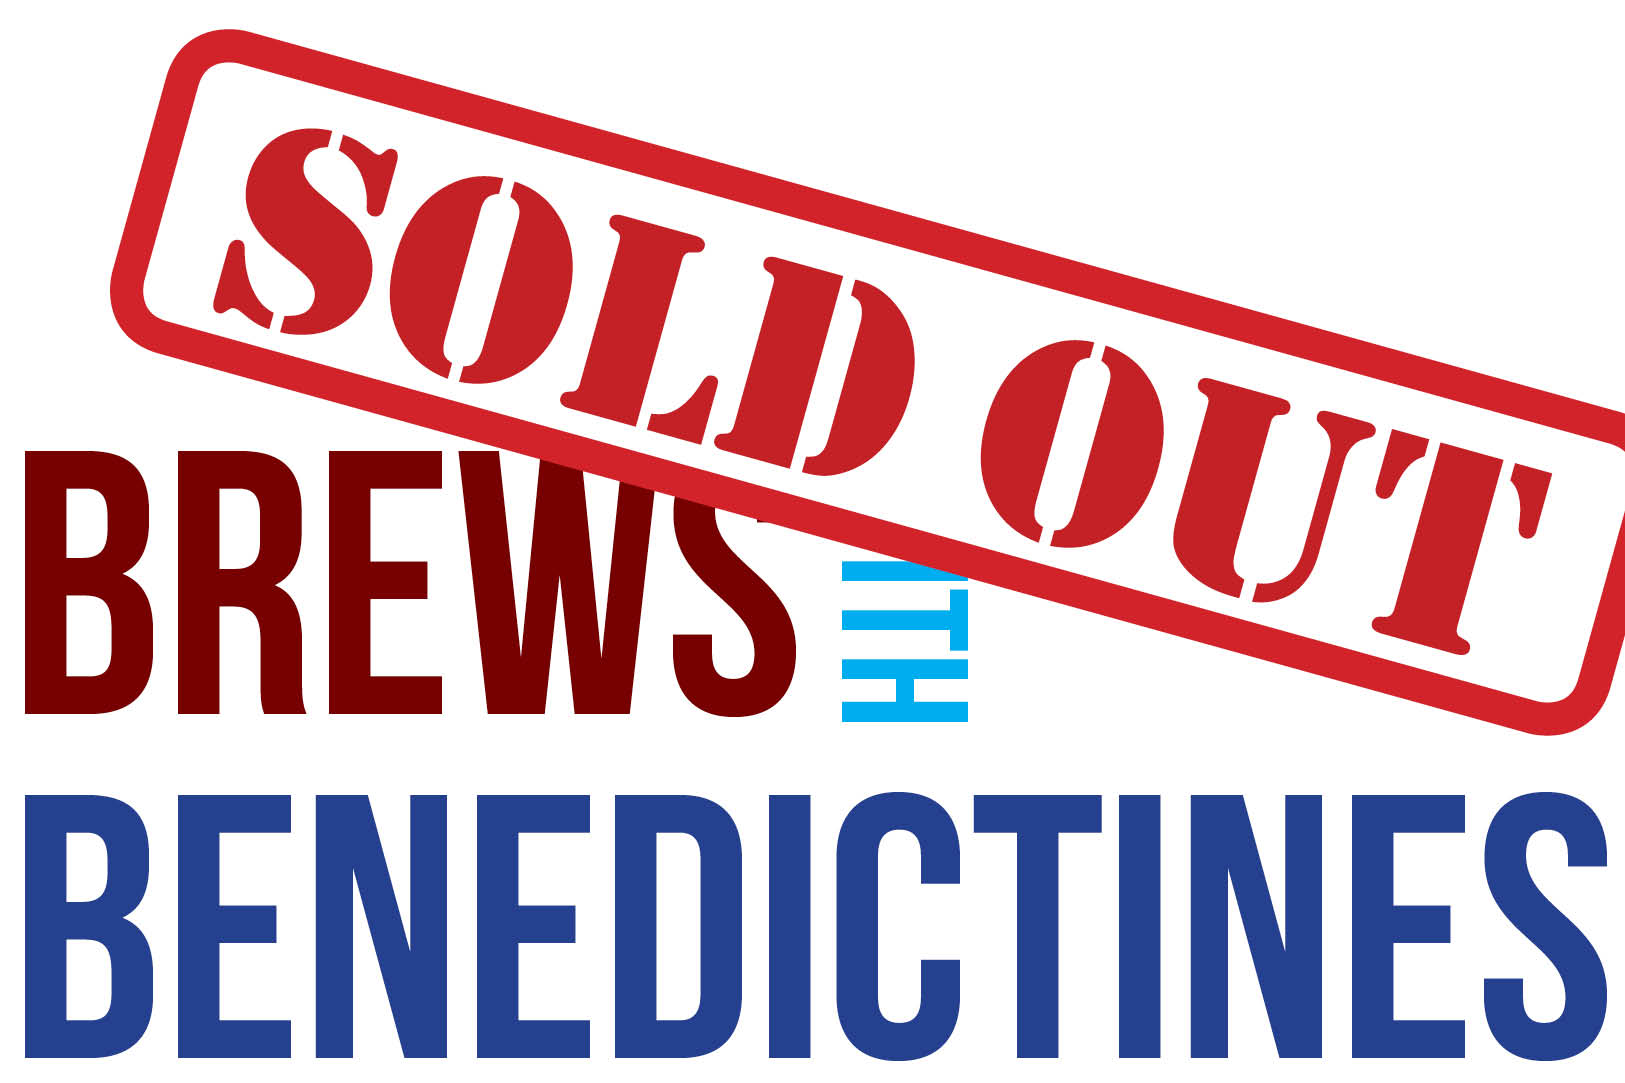 This event has been sold out – thank you to all those who registered. If you missed out, we plan to do this again in the future.